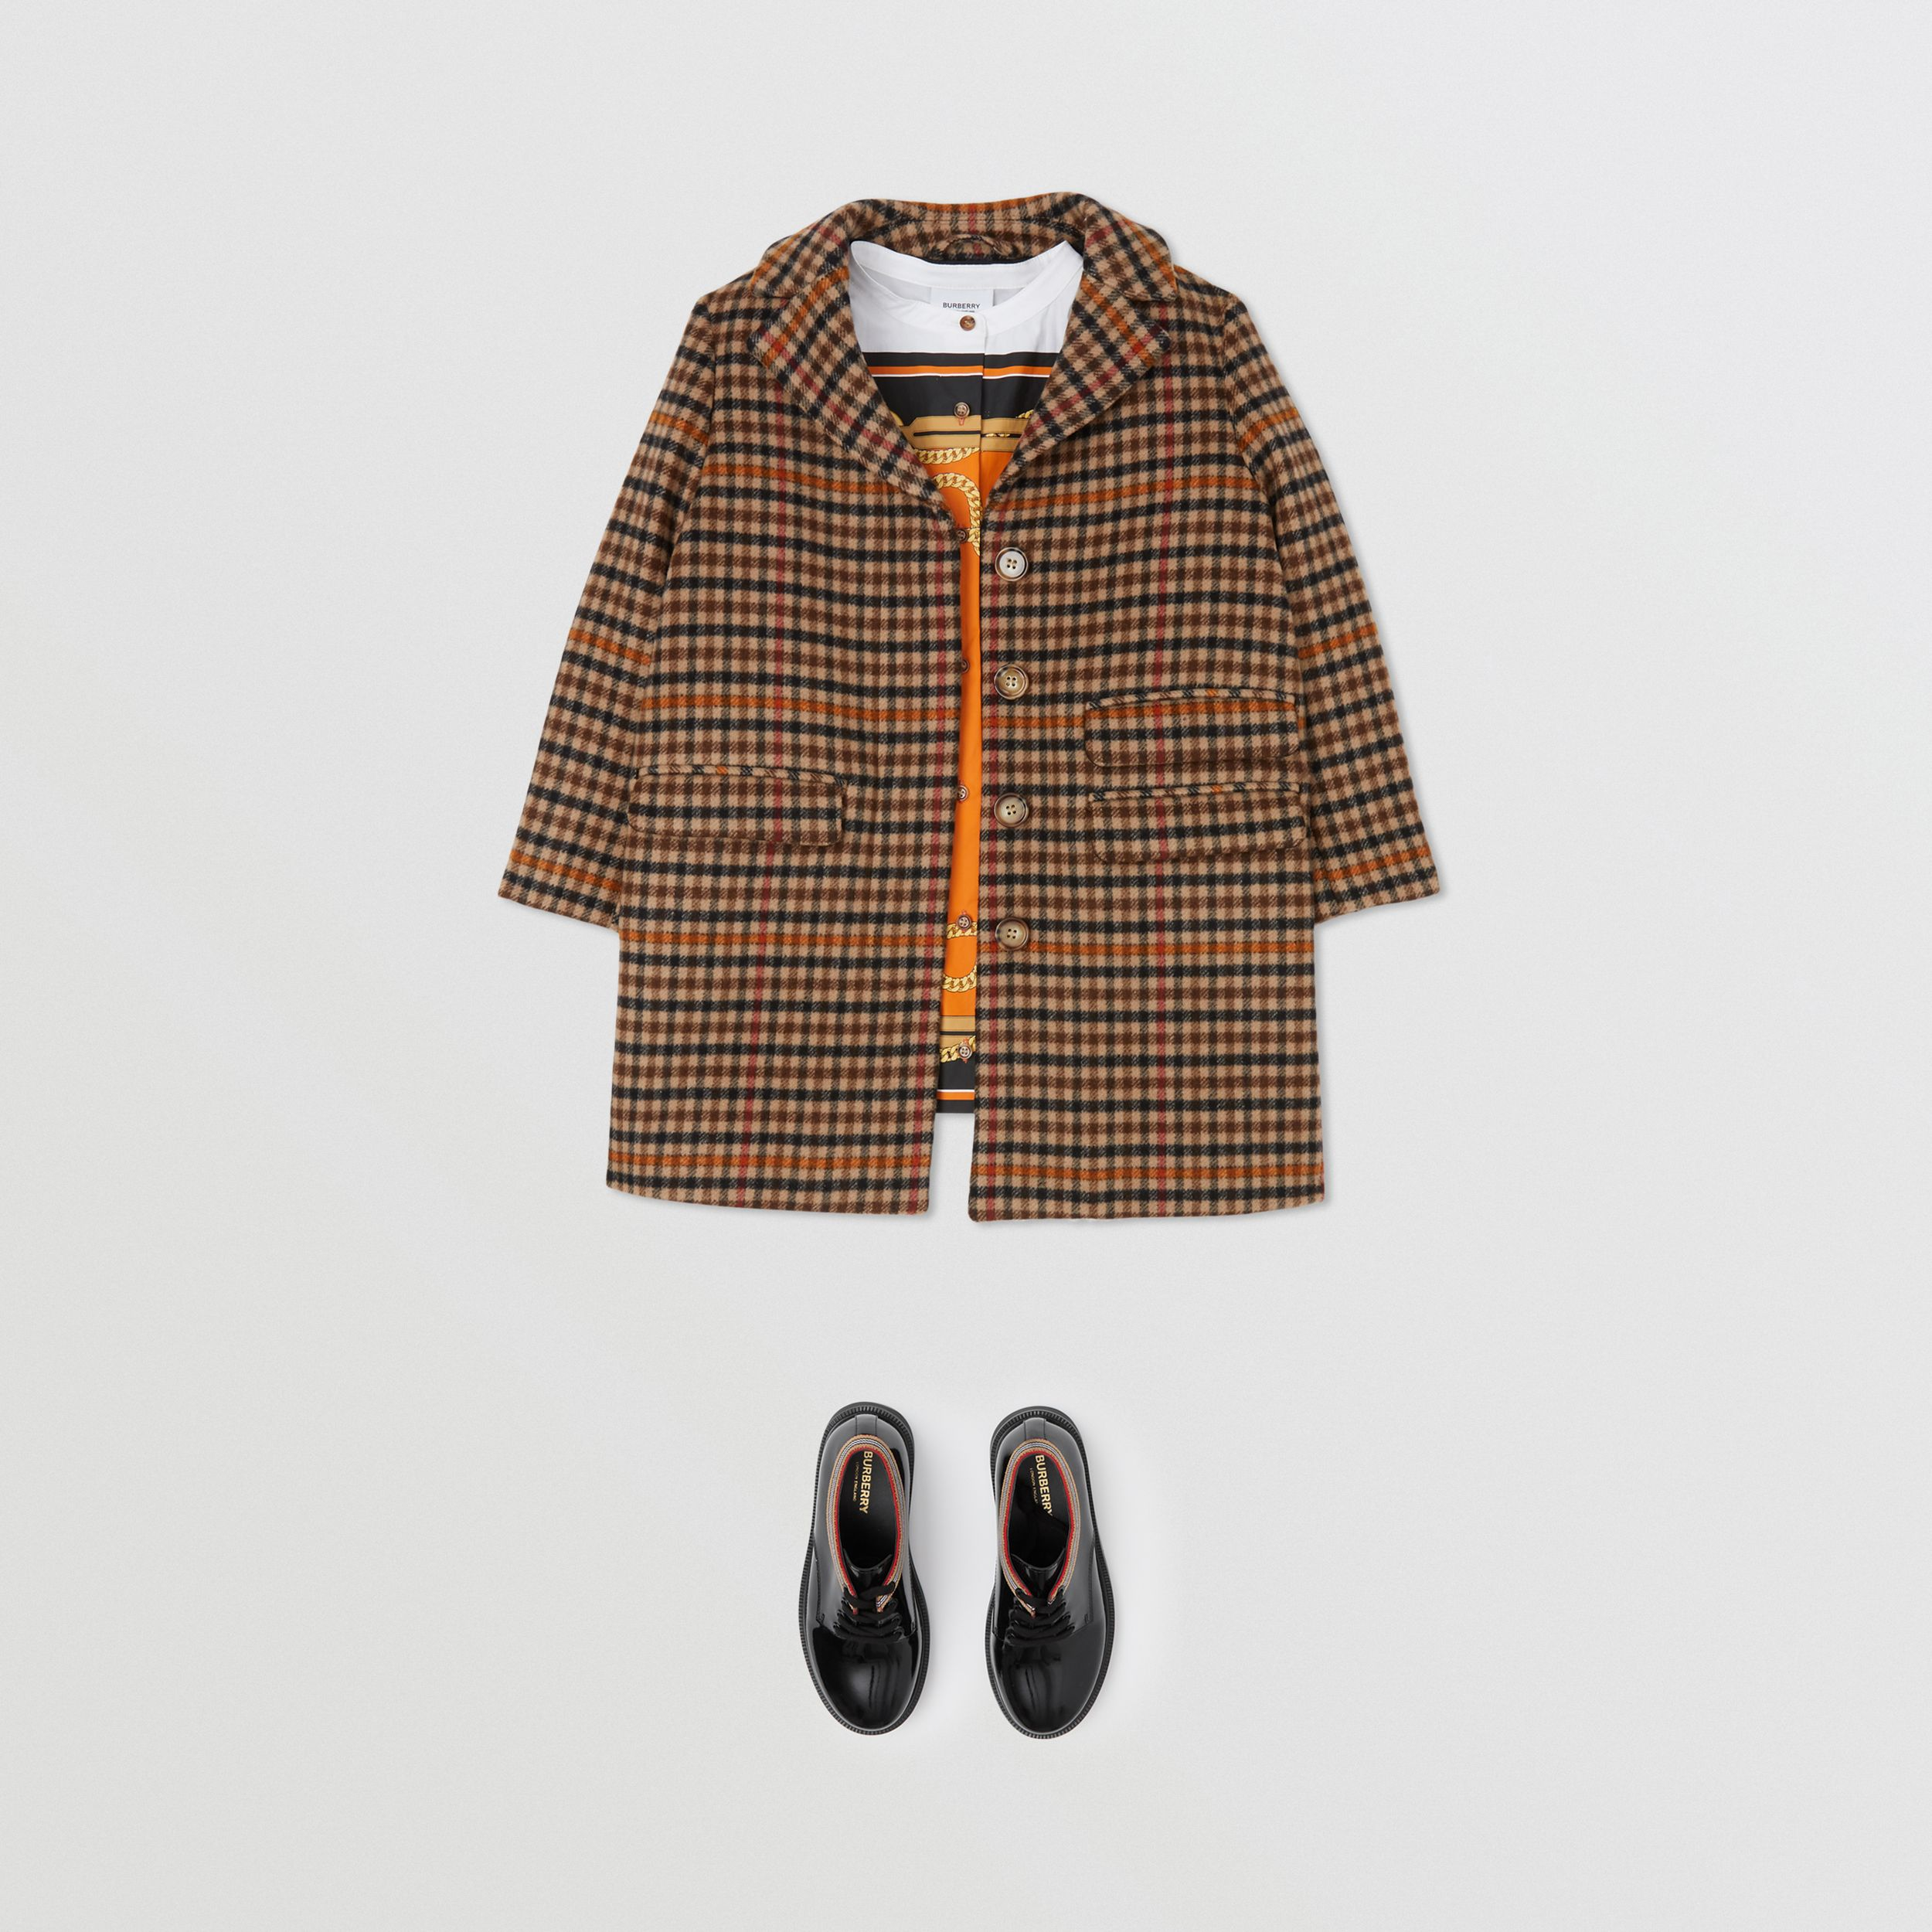 Embroidered Monogram Motif Check Wool Tailored Coat in Camel | Burberry Hong Kong S.A.R. - 2